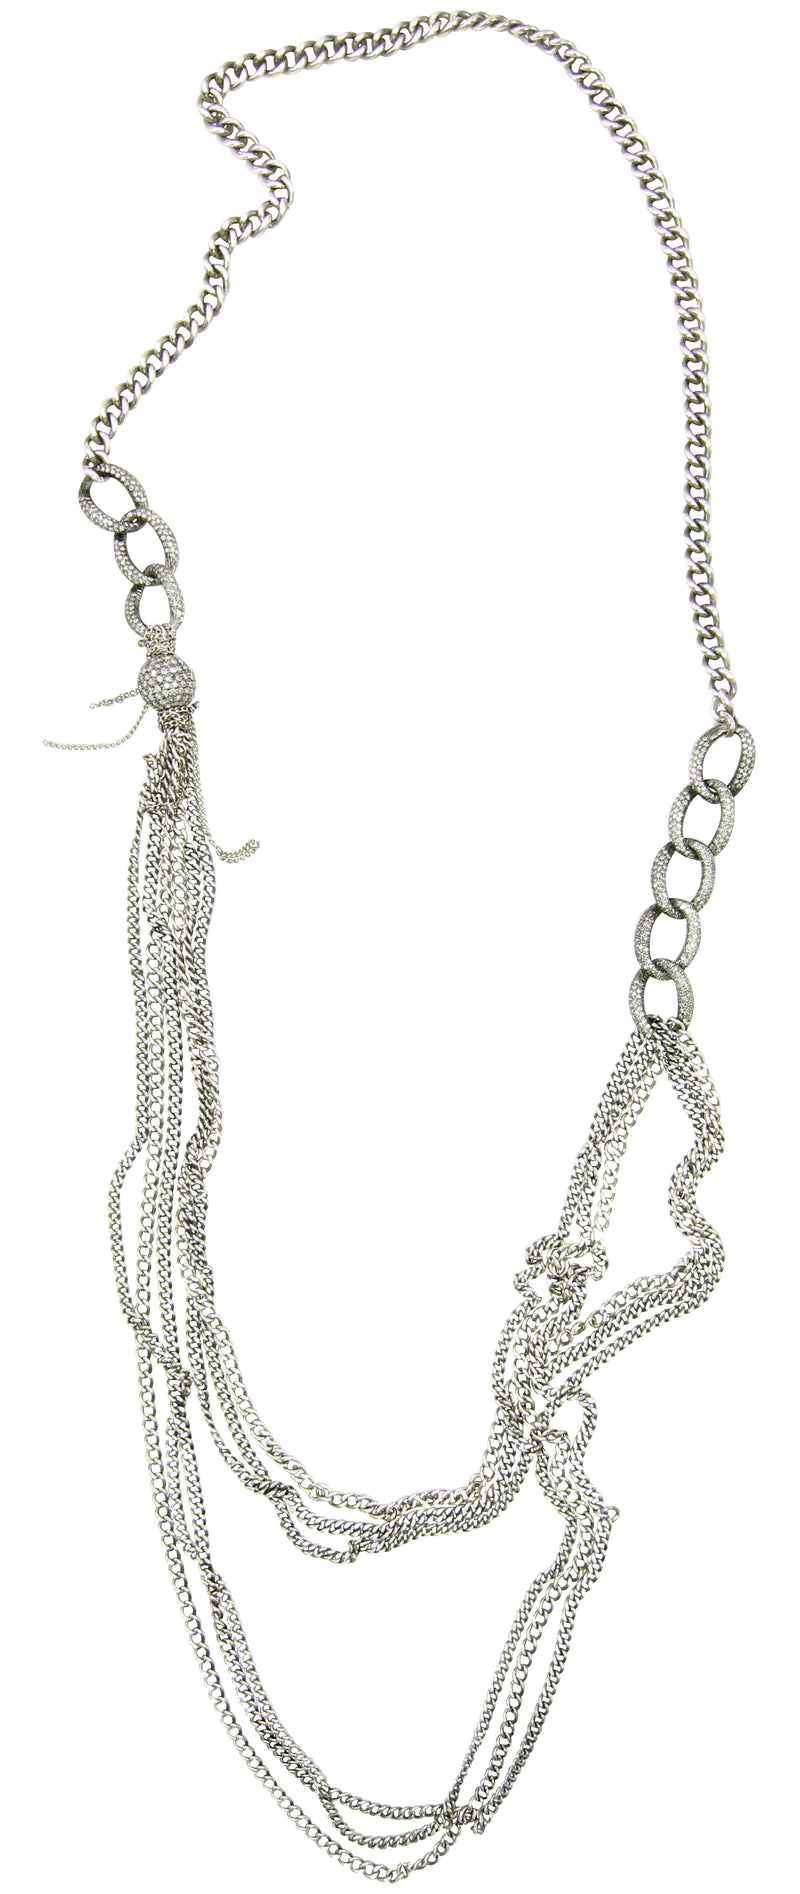 Creative necklace made of diamond links and chains that converts from a traditional necklace to edgy lariat.